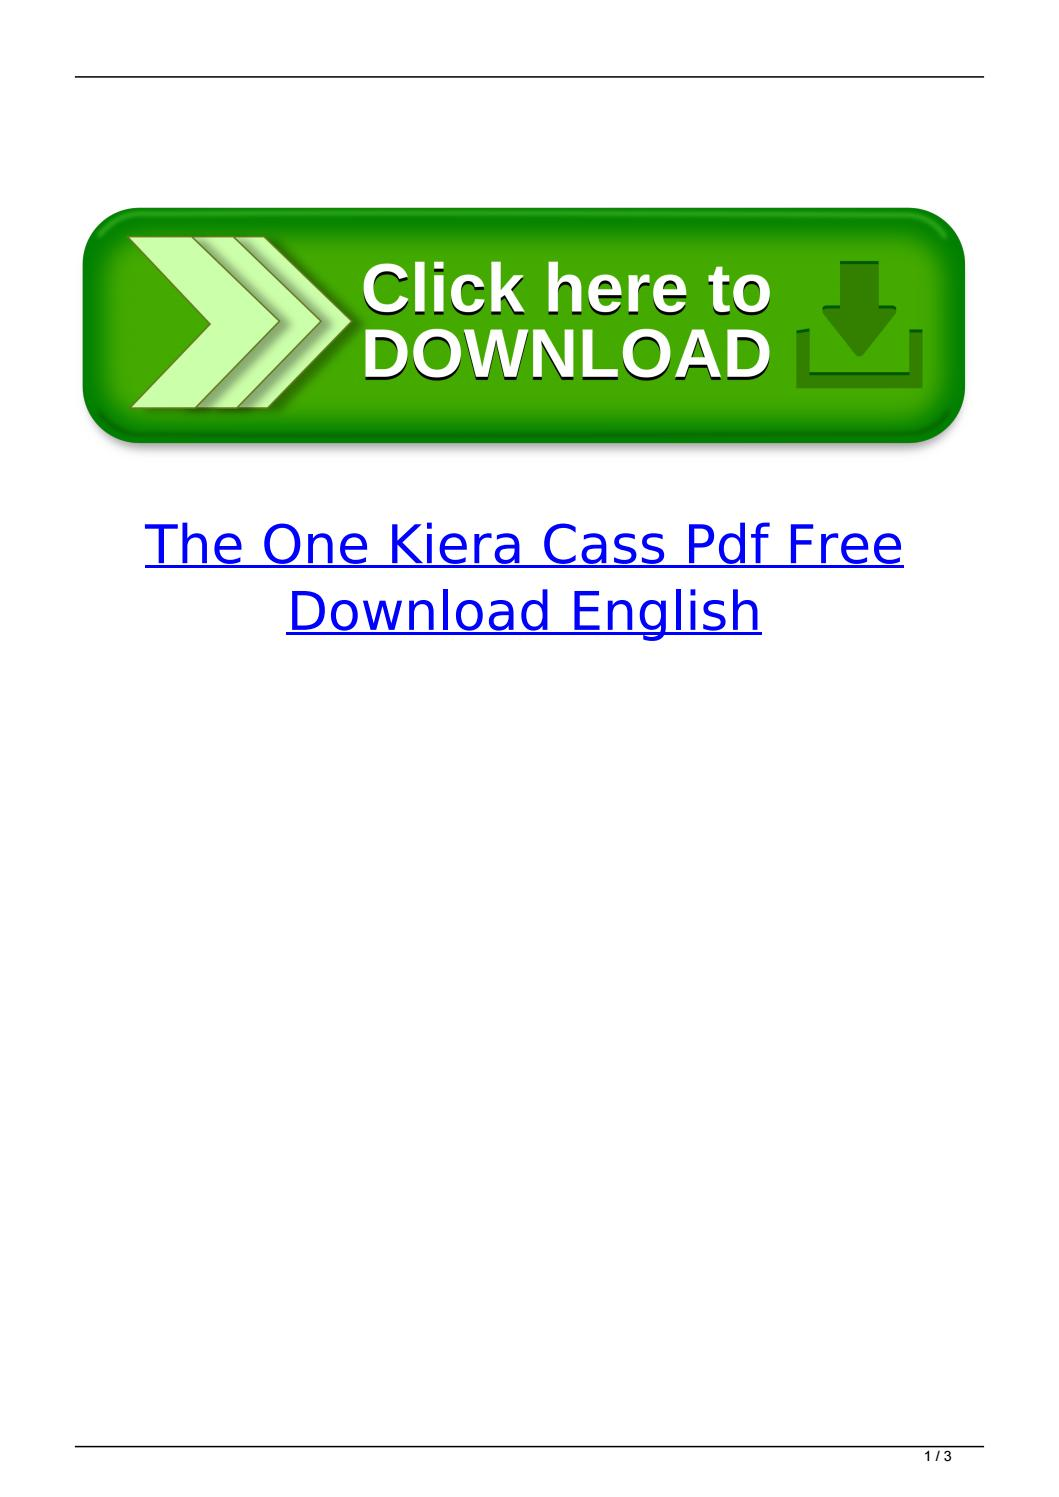 The One Kiera Cass Pdf Free Download